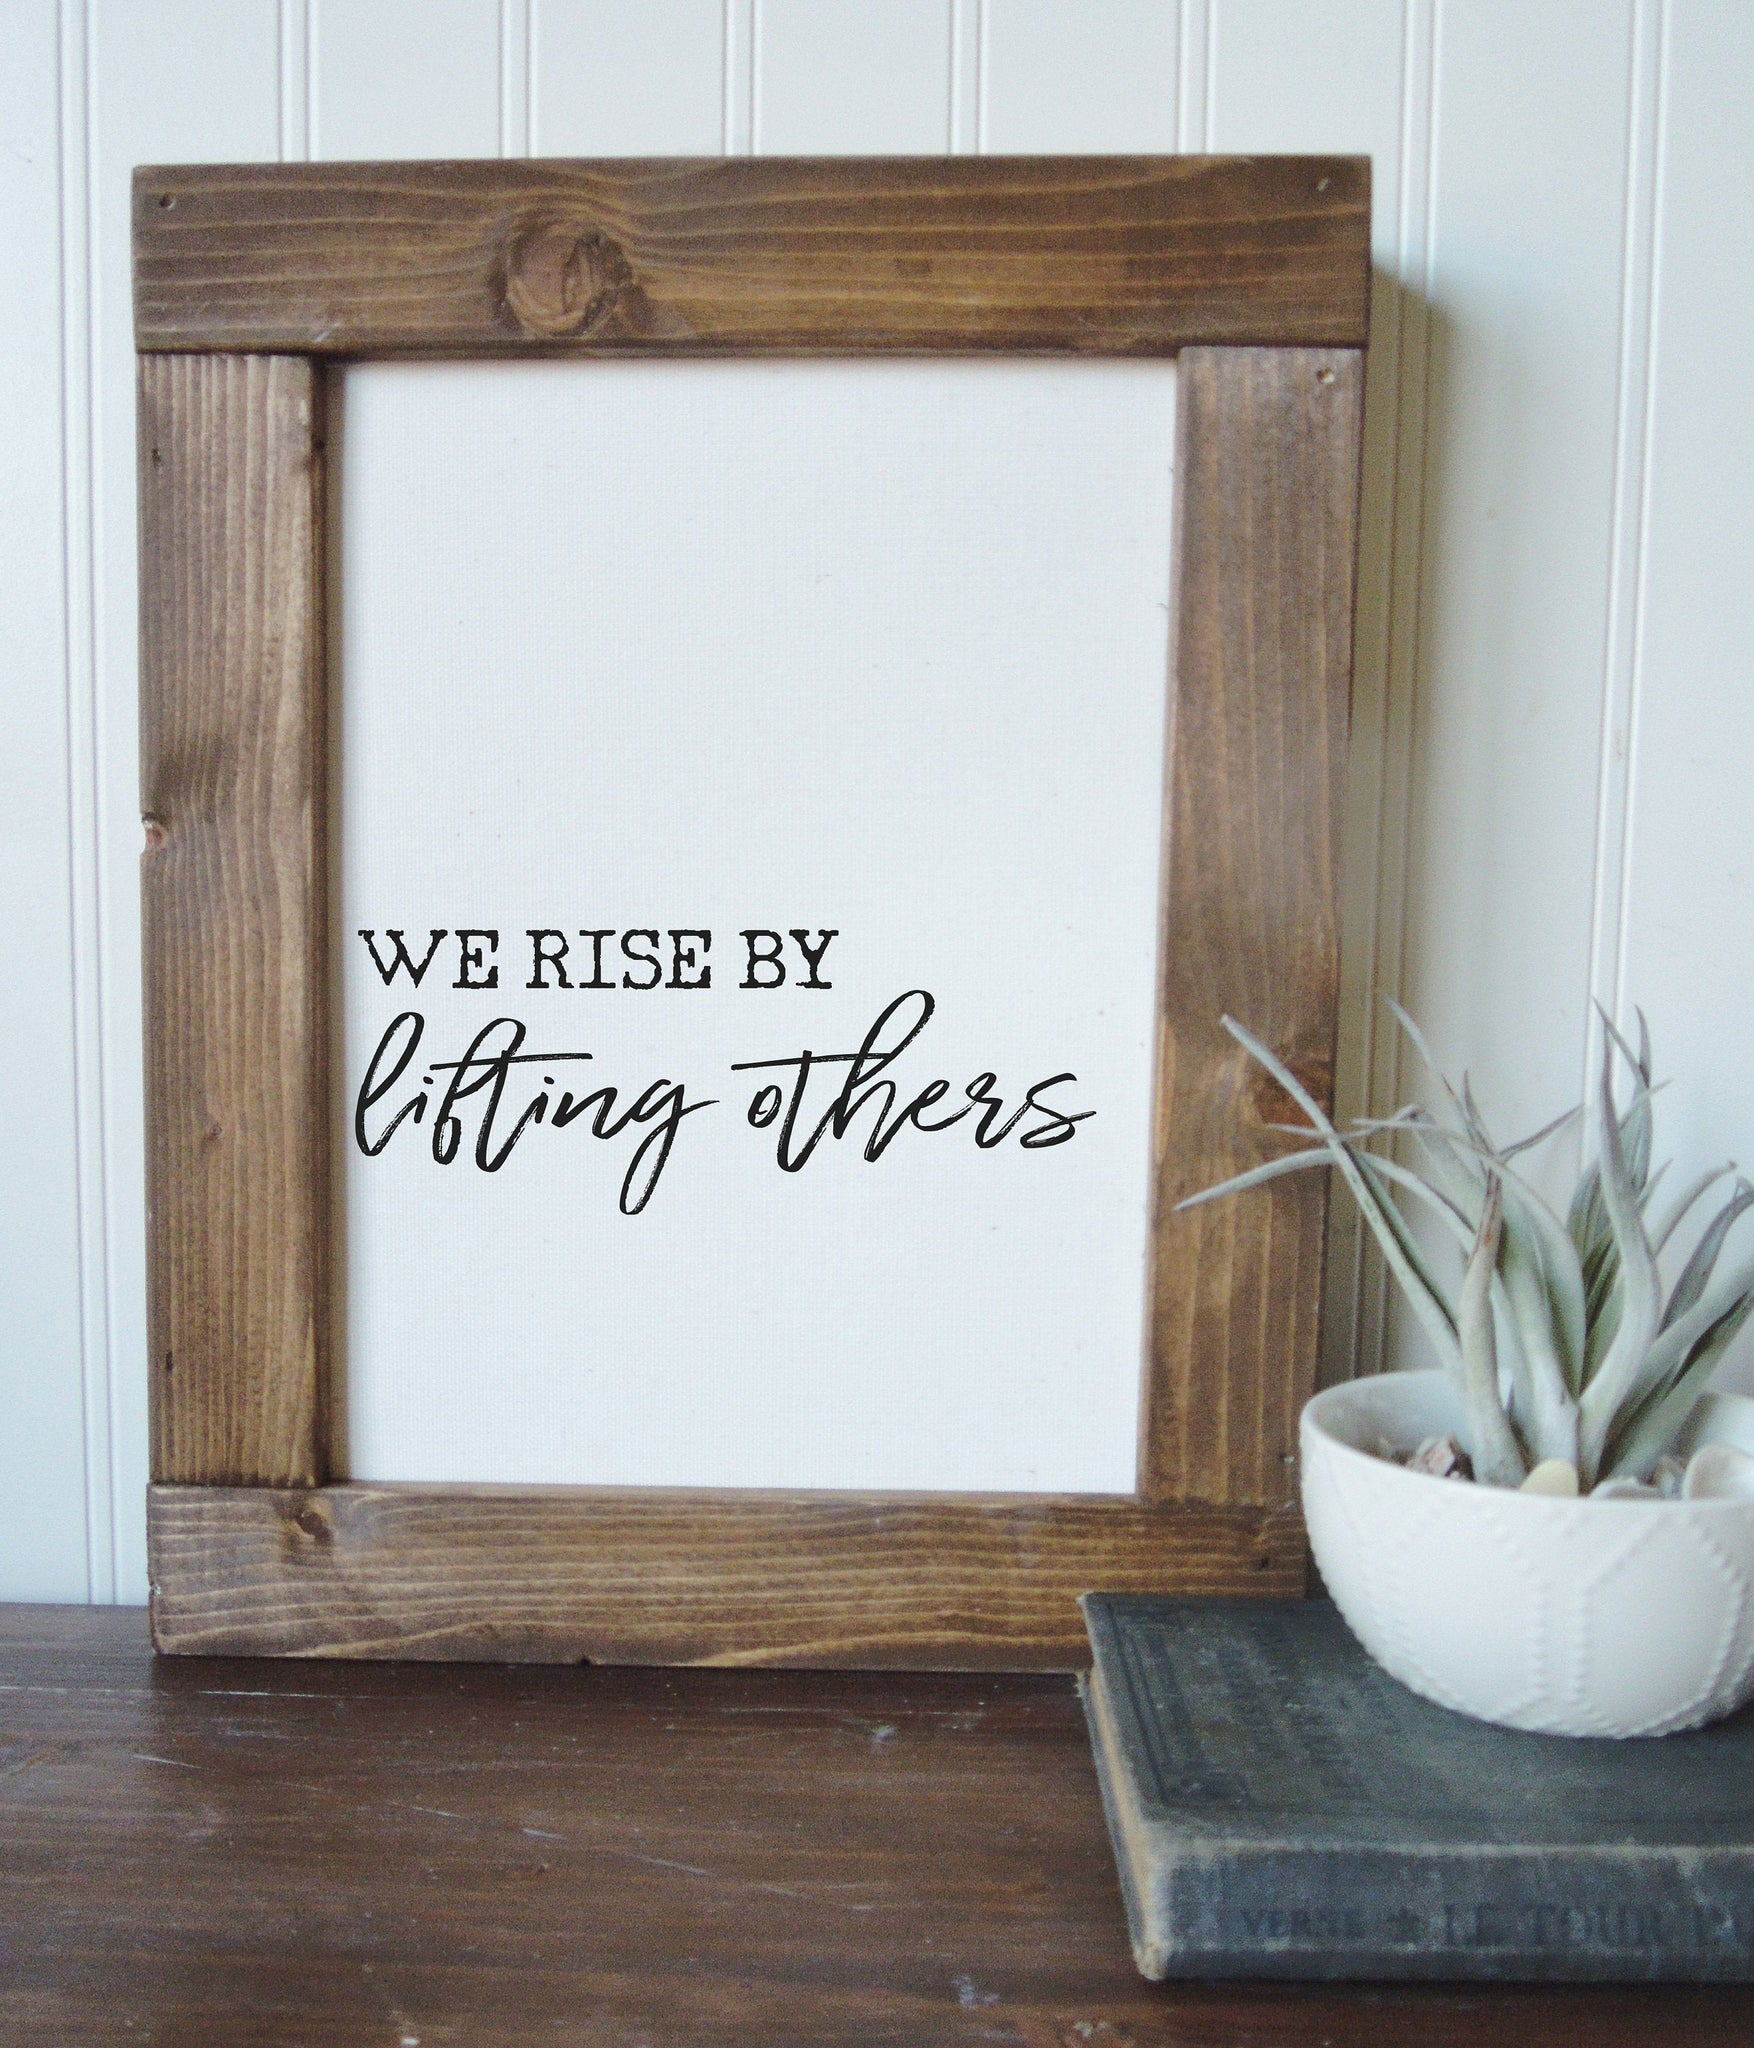 We rise by lifting others/canvas print/inspirational print/tabletop sign/home decor/wall art